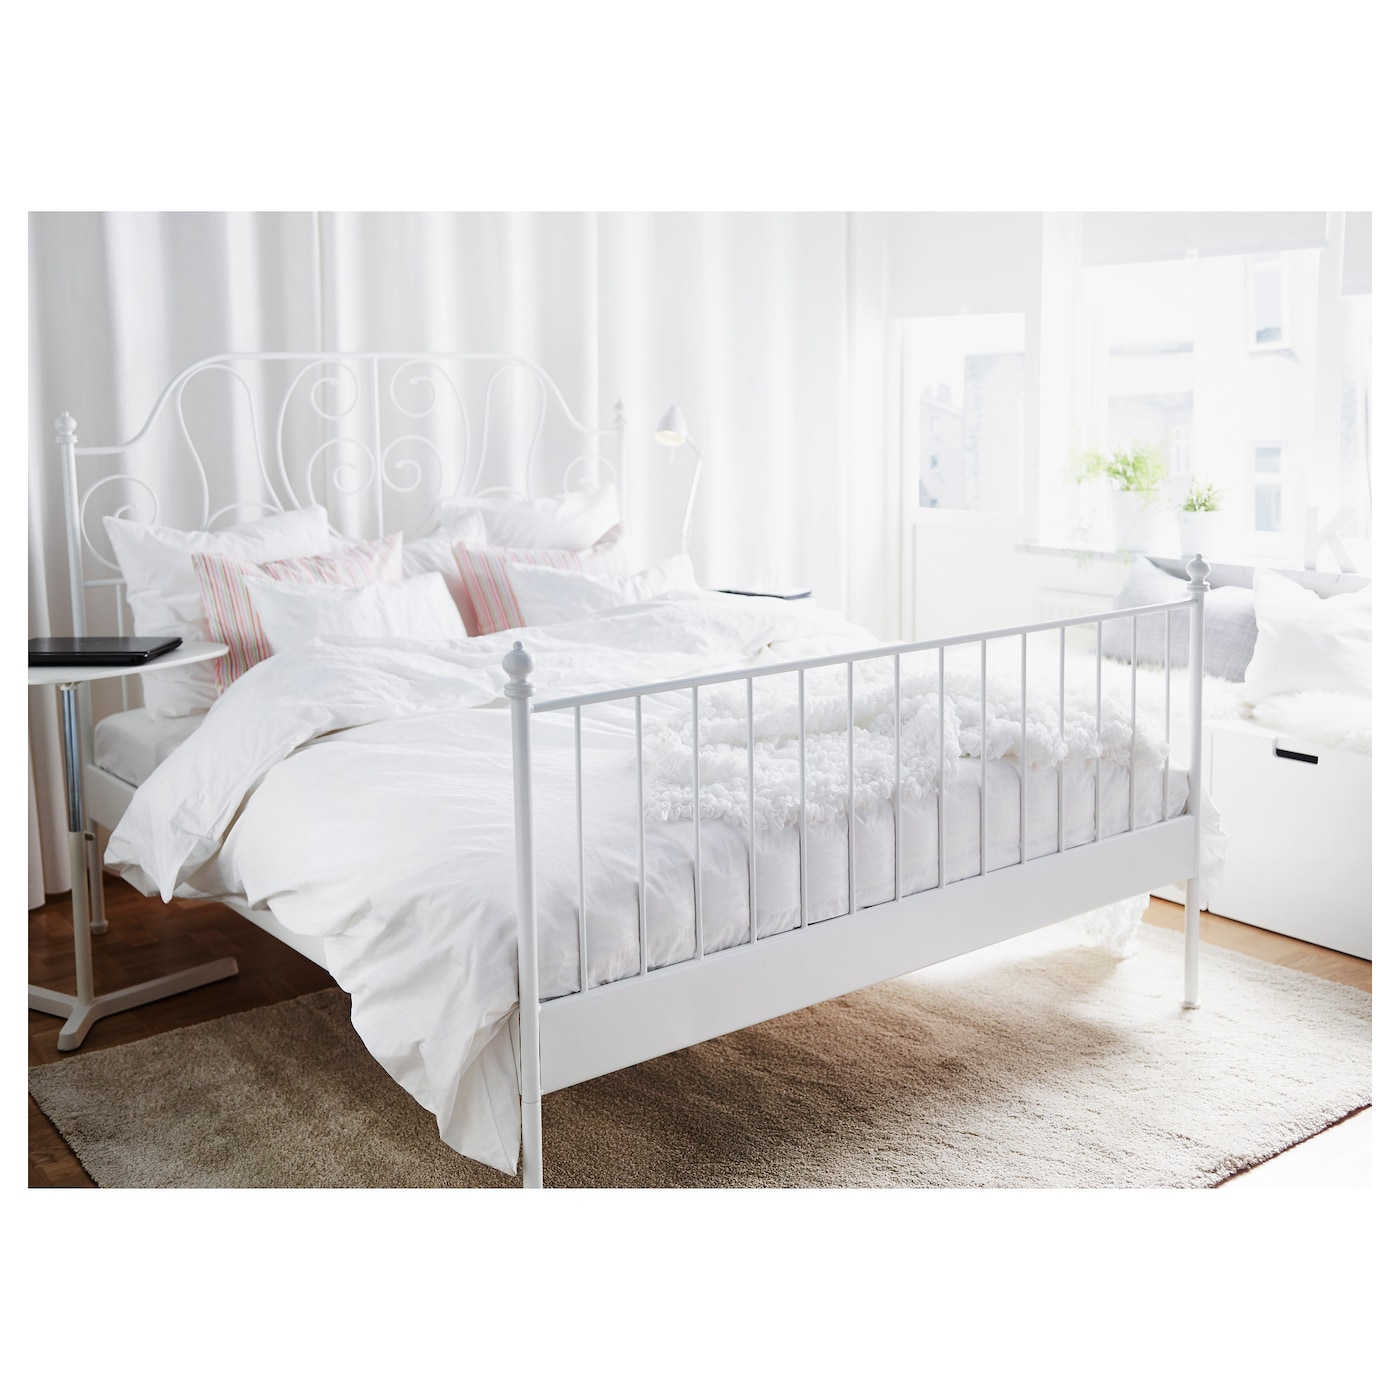 leirvik cadre de lit blanc 160 x 200 cm ikea. Black Bedroom Furniture Sets. Home Design Ideas